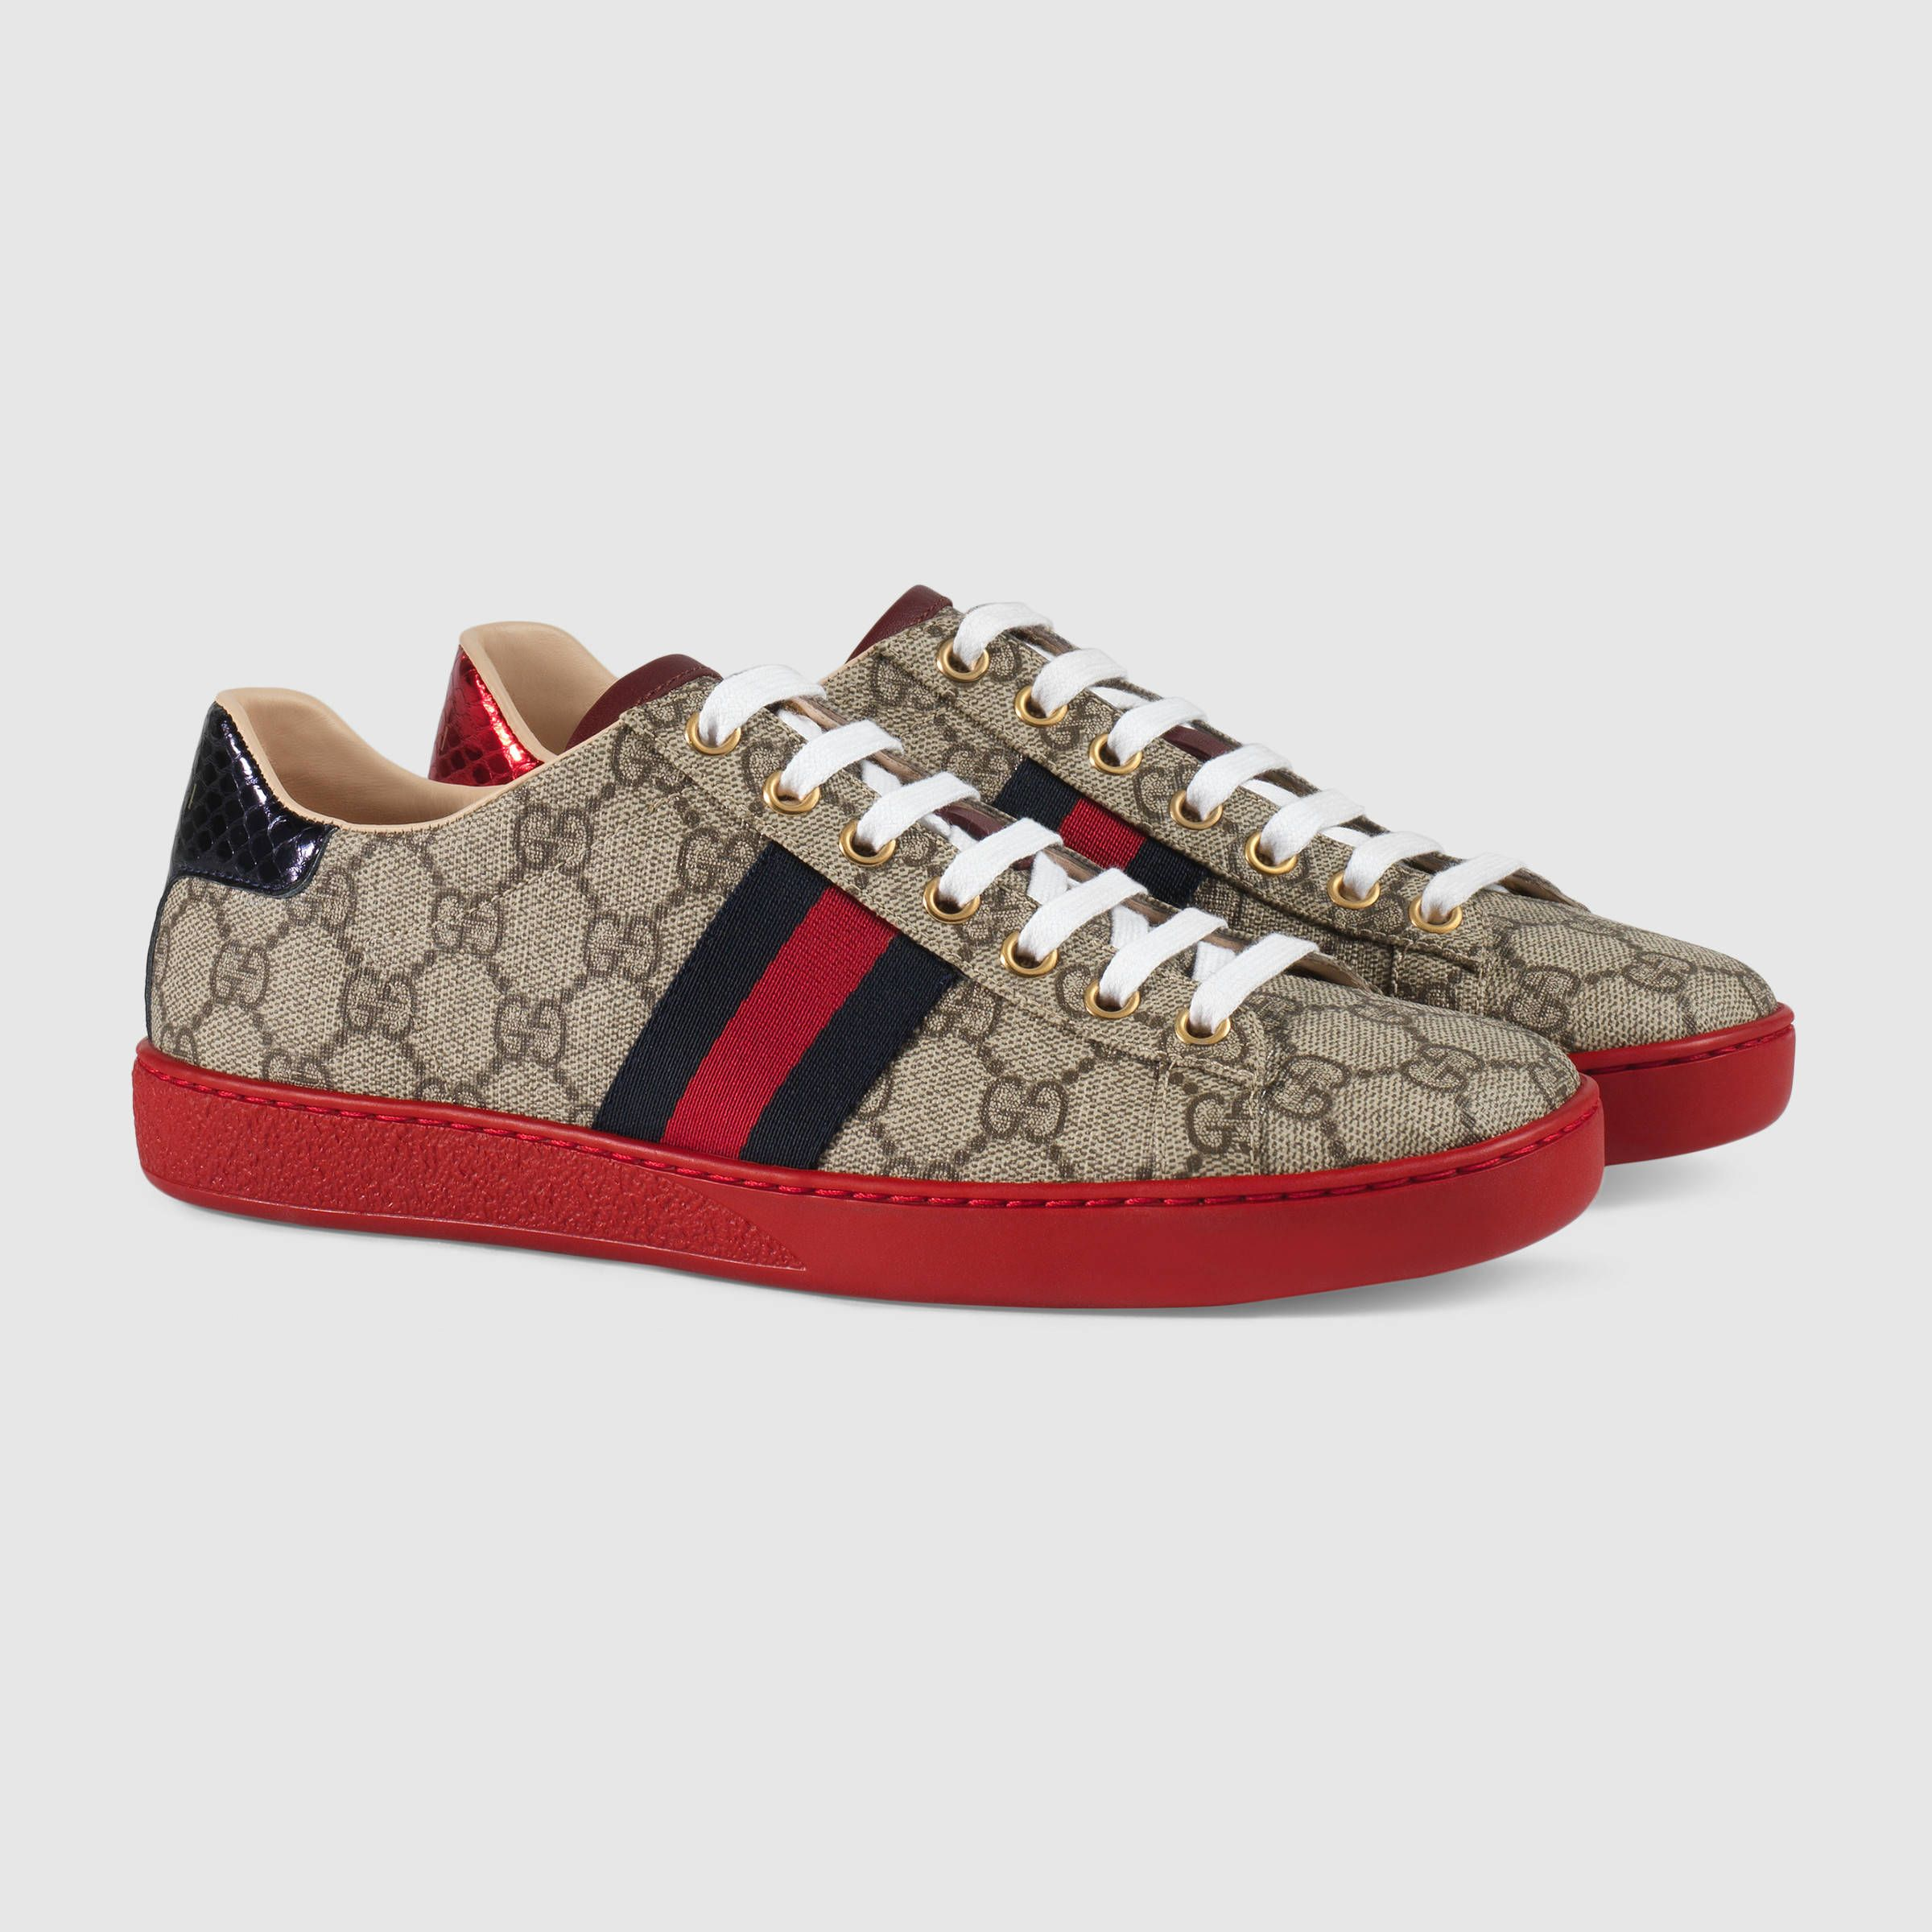 708da017cf8 Gucci Women - Ace GG Supreme low-top sneaker - 433900K2LH09767 ...